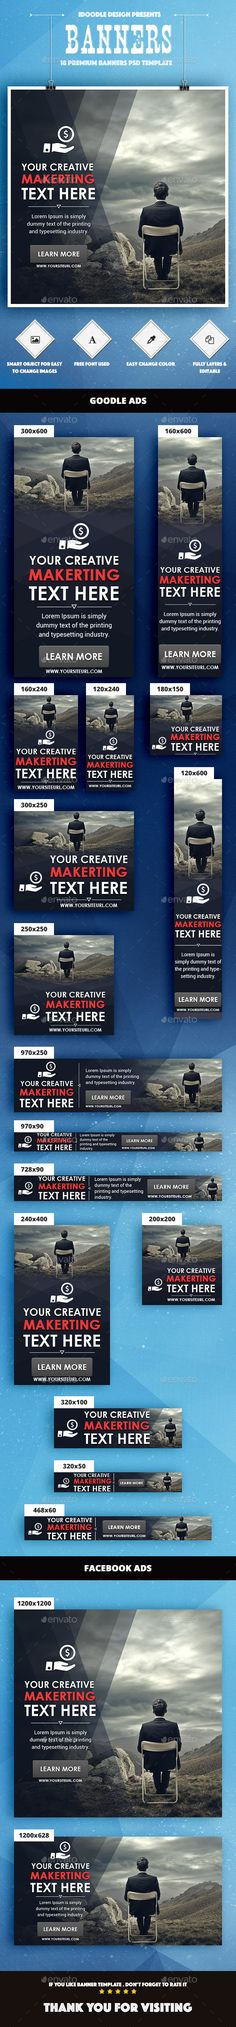 Multipurpose Web Banners Template PSD #ad #promotion Download: http://graphicriver.net/item/multipurpose-banners-ads/14525167?ref=ksioks